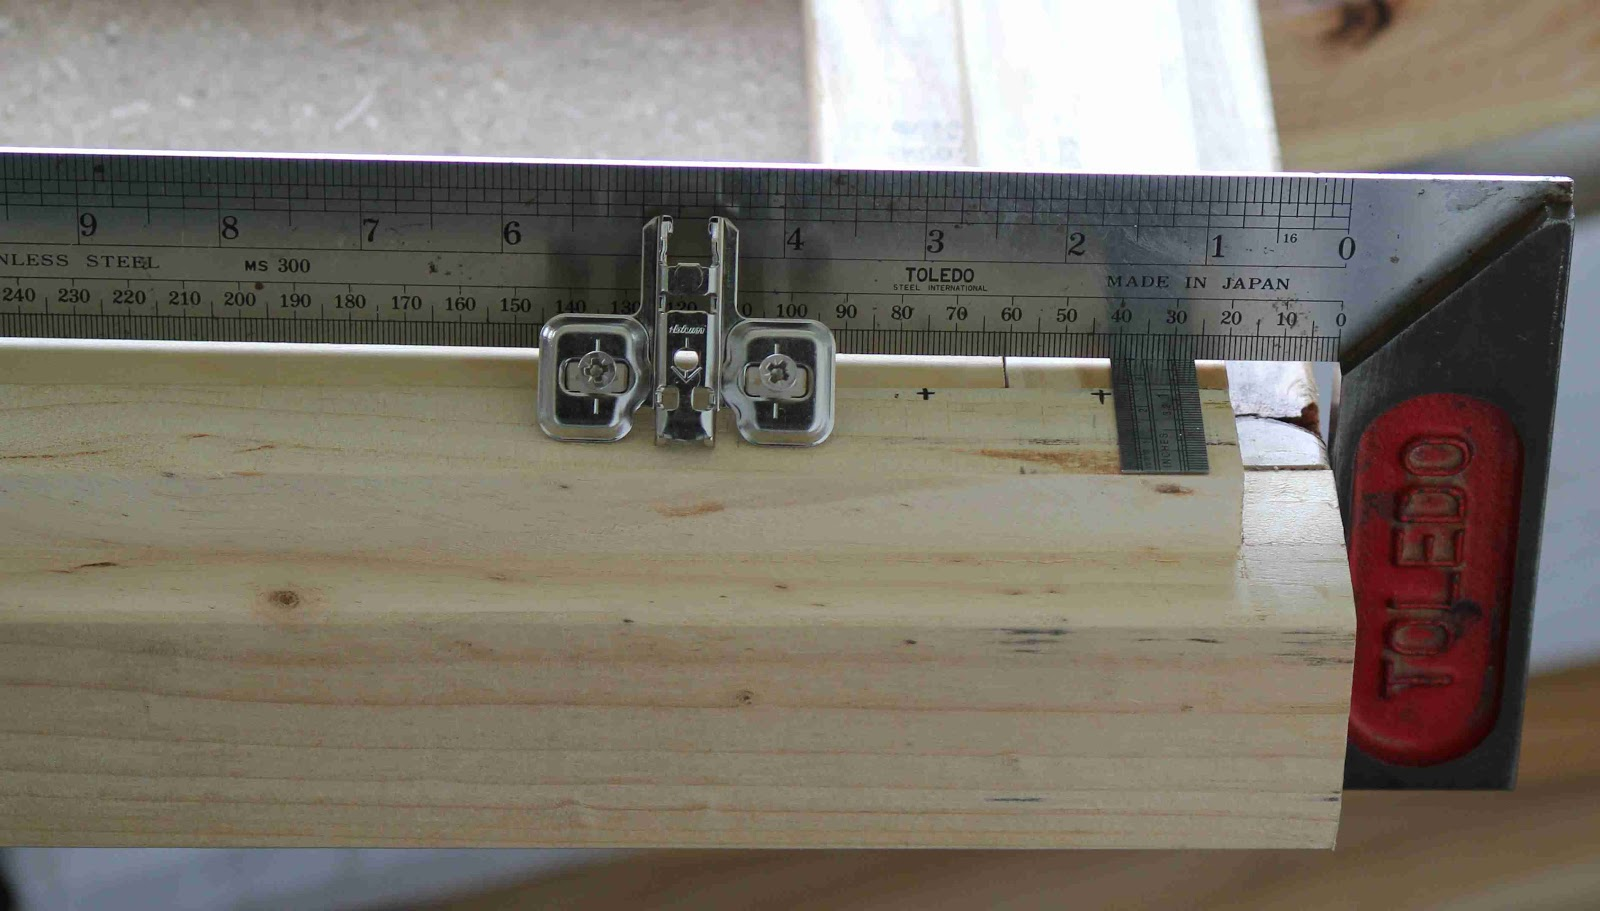 blog de VK5HSE: IKEA mounting hole dimensions - In case you